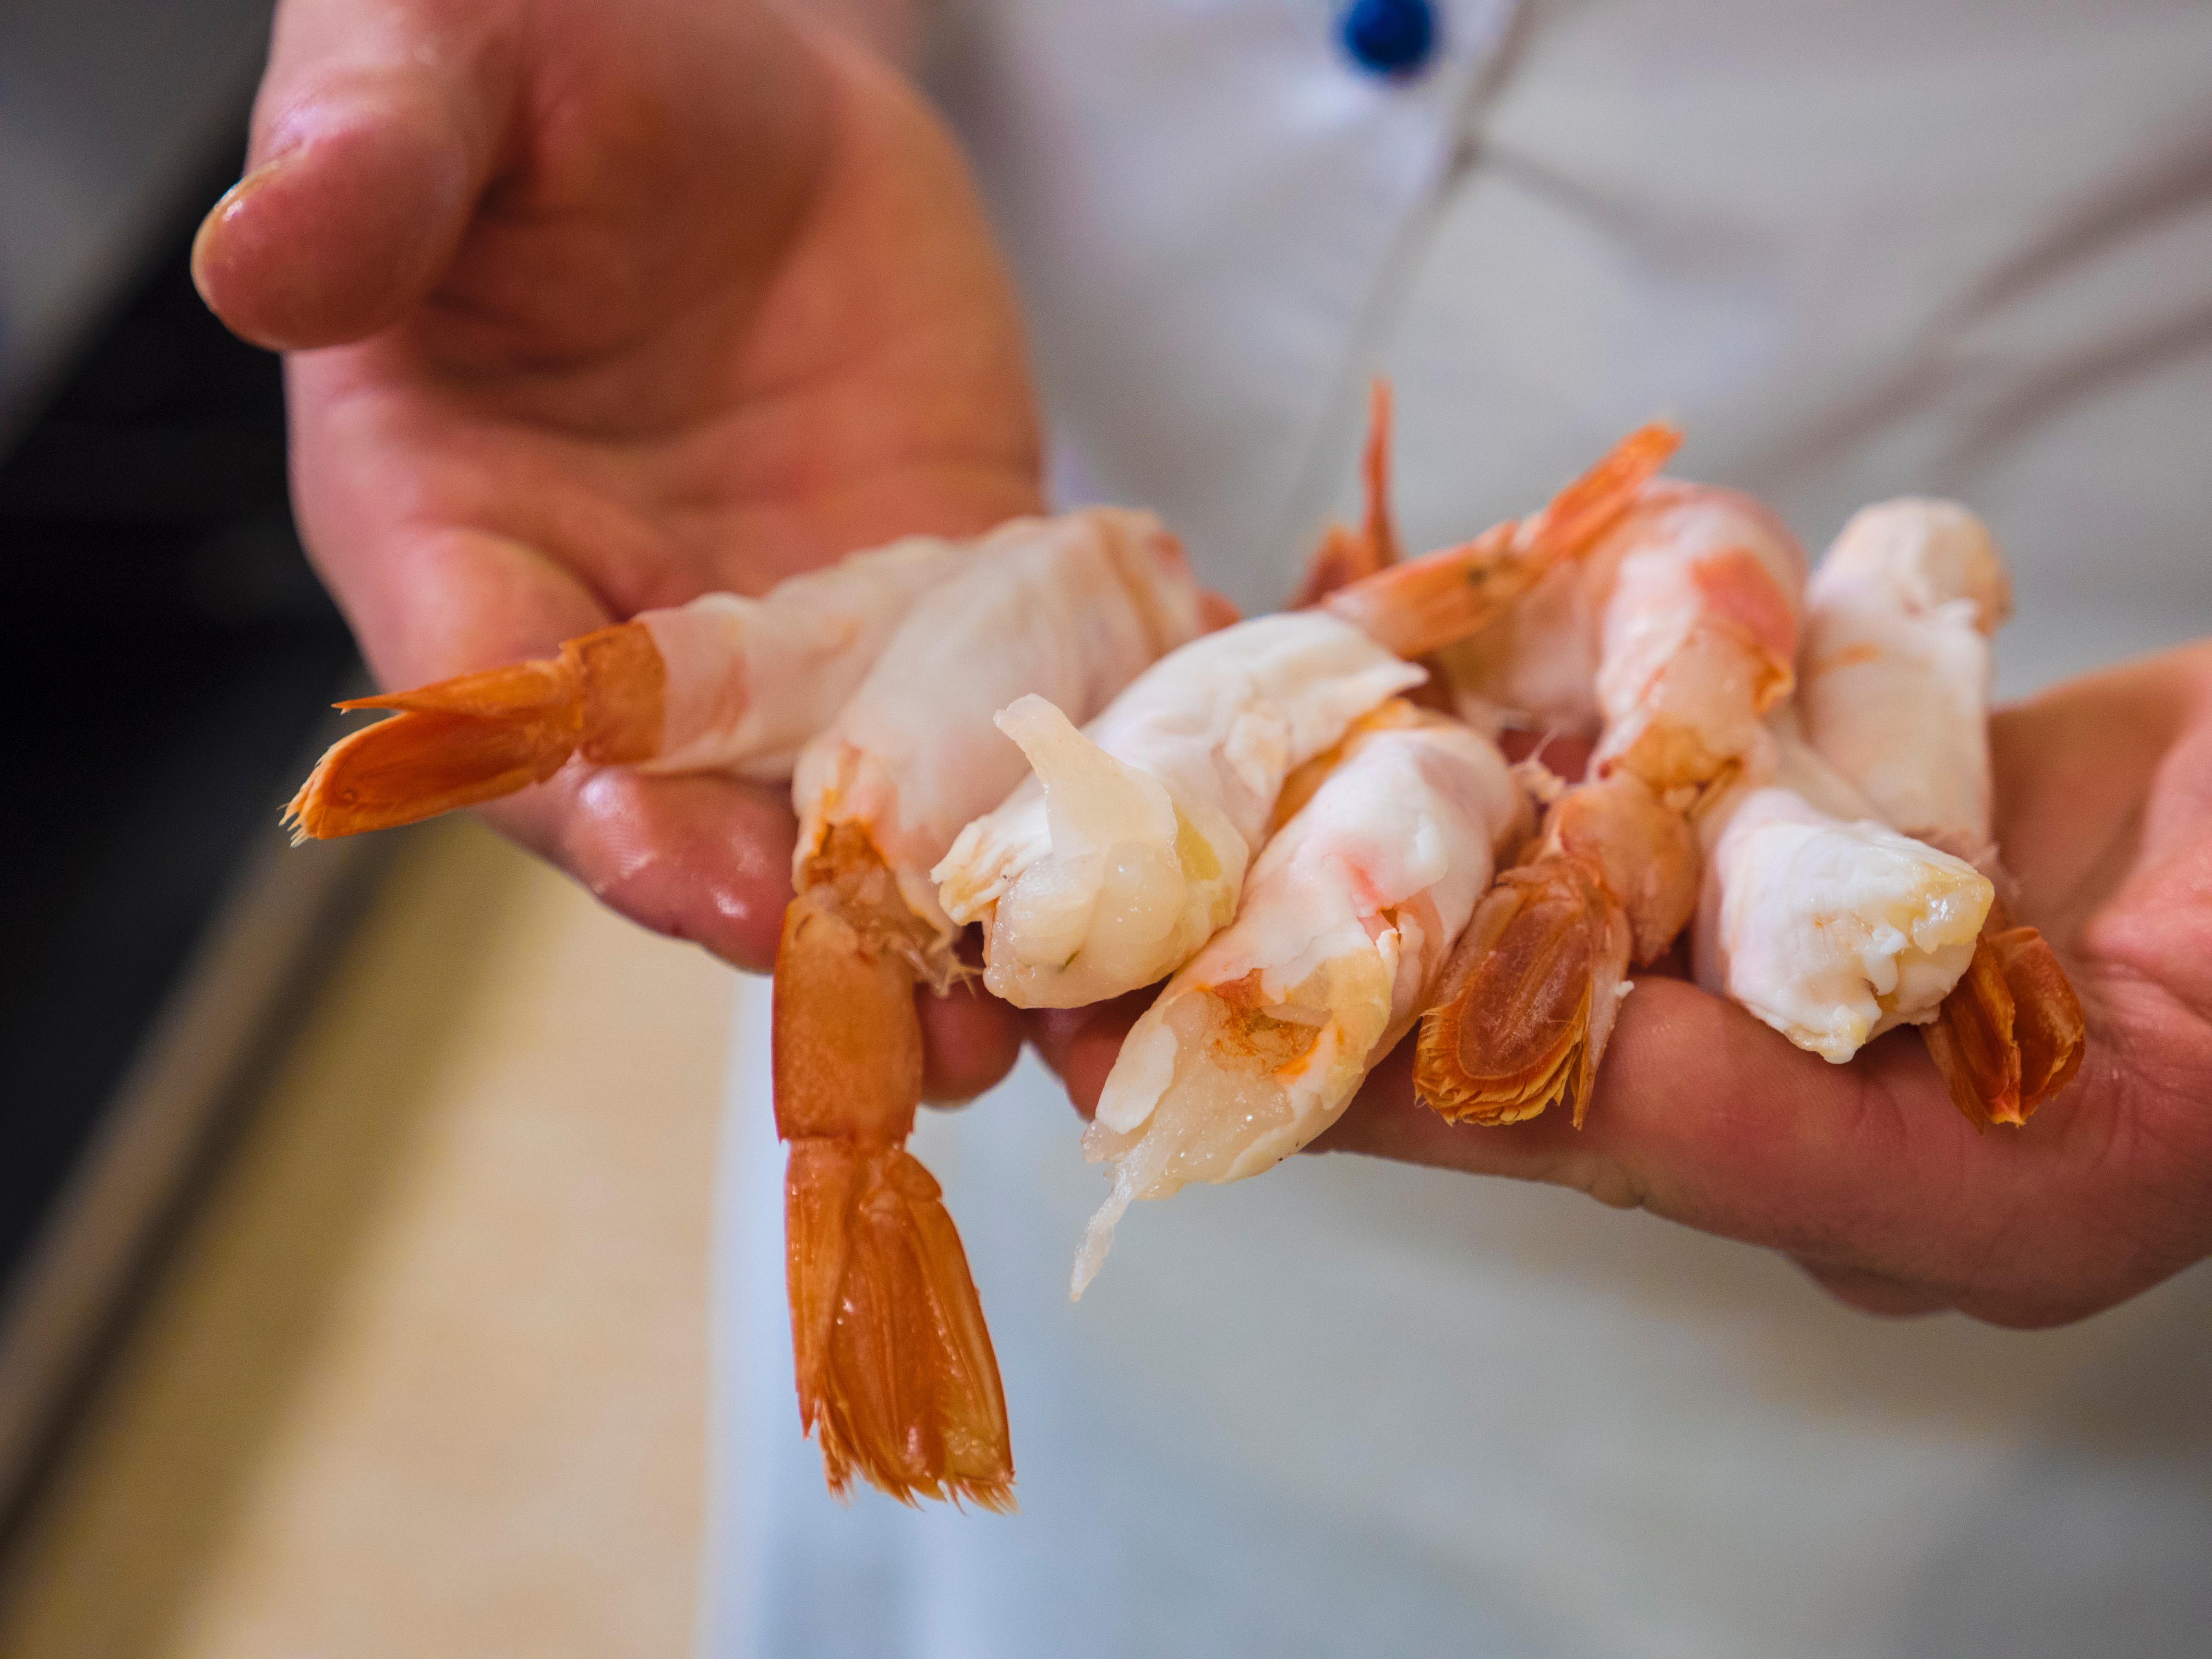 Americans love shrimp